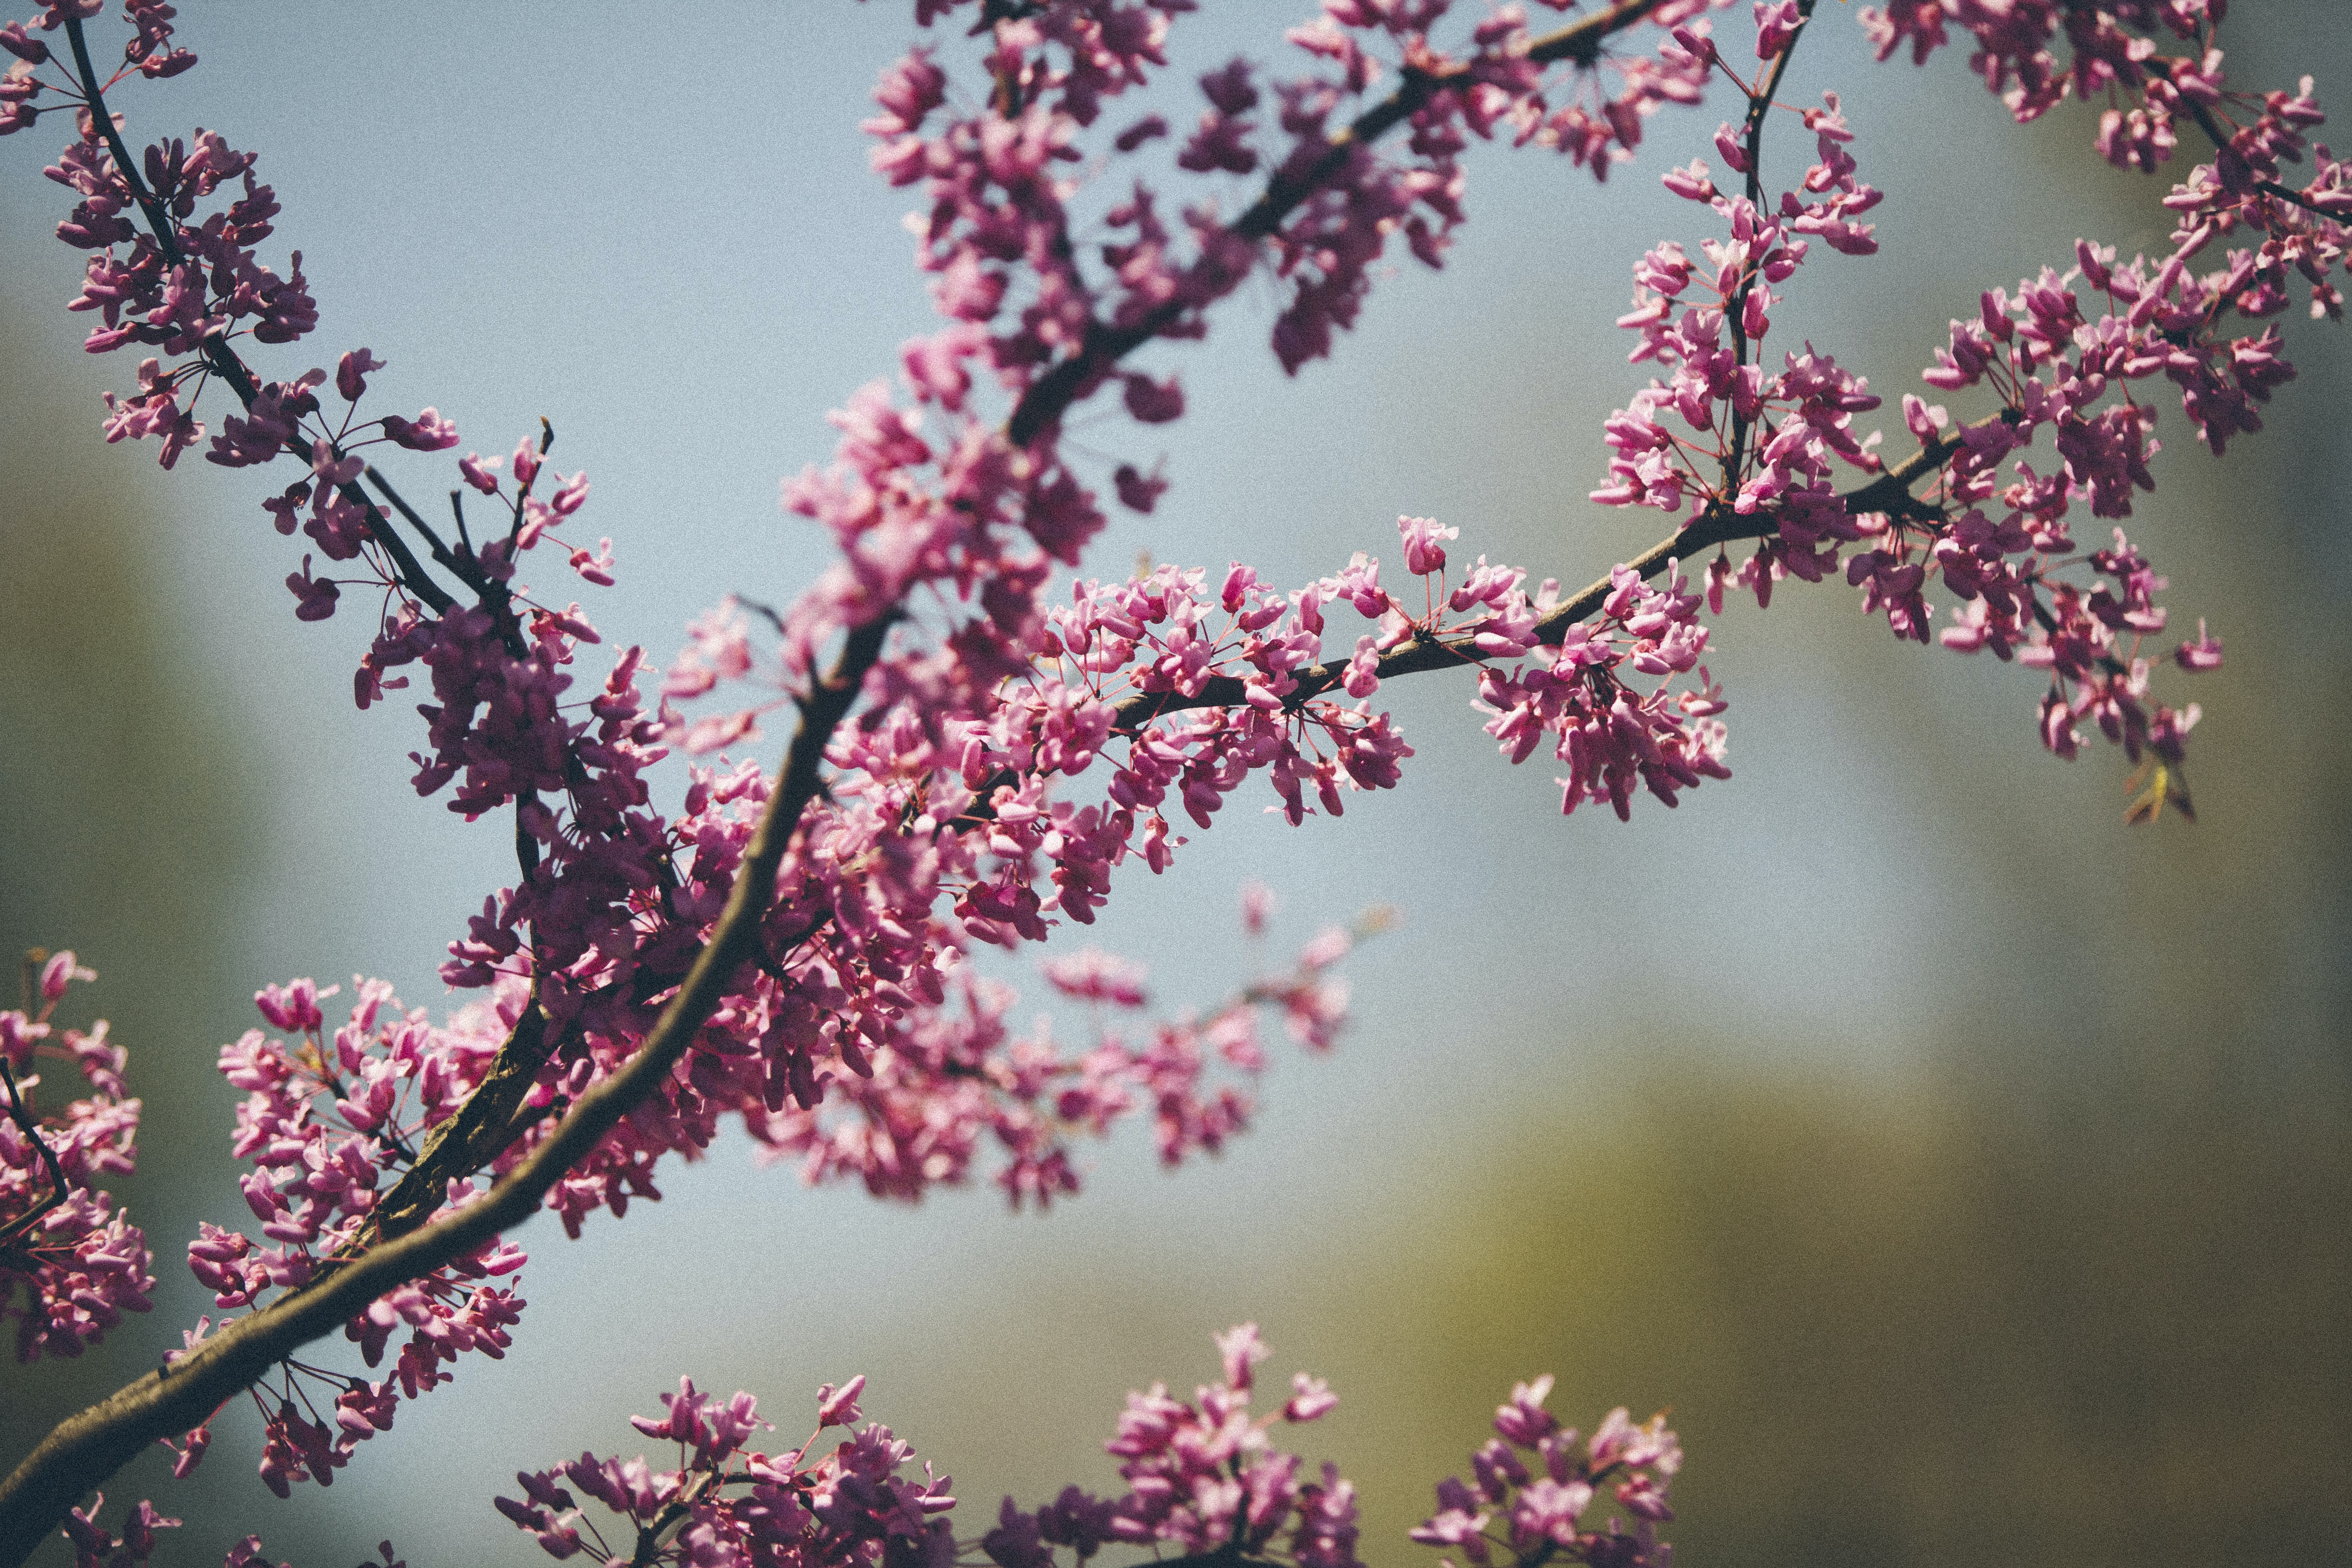 A tree branch covered in delicate pink flowers